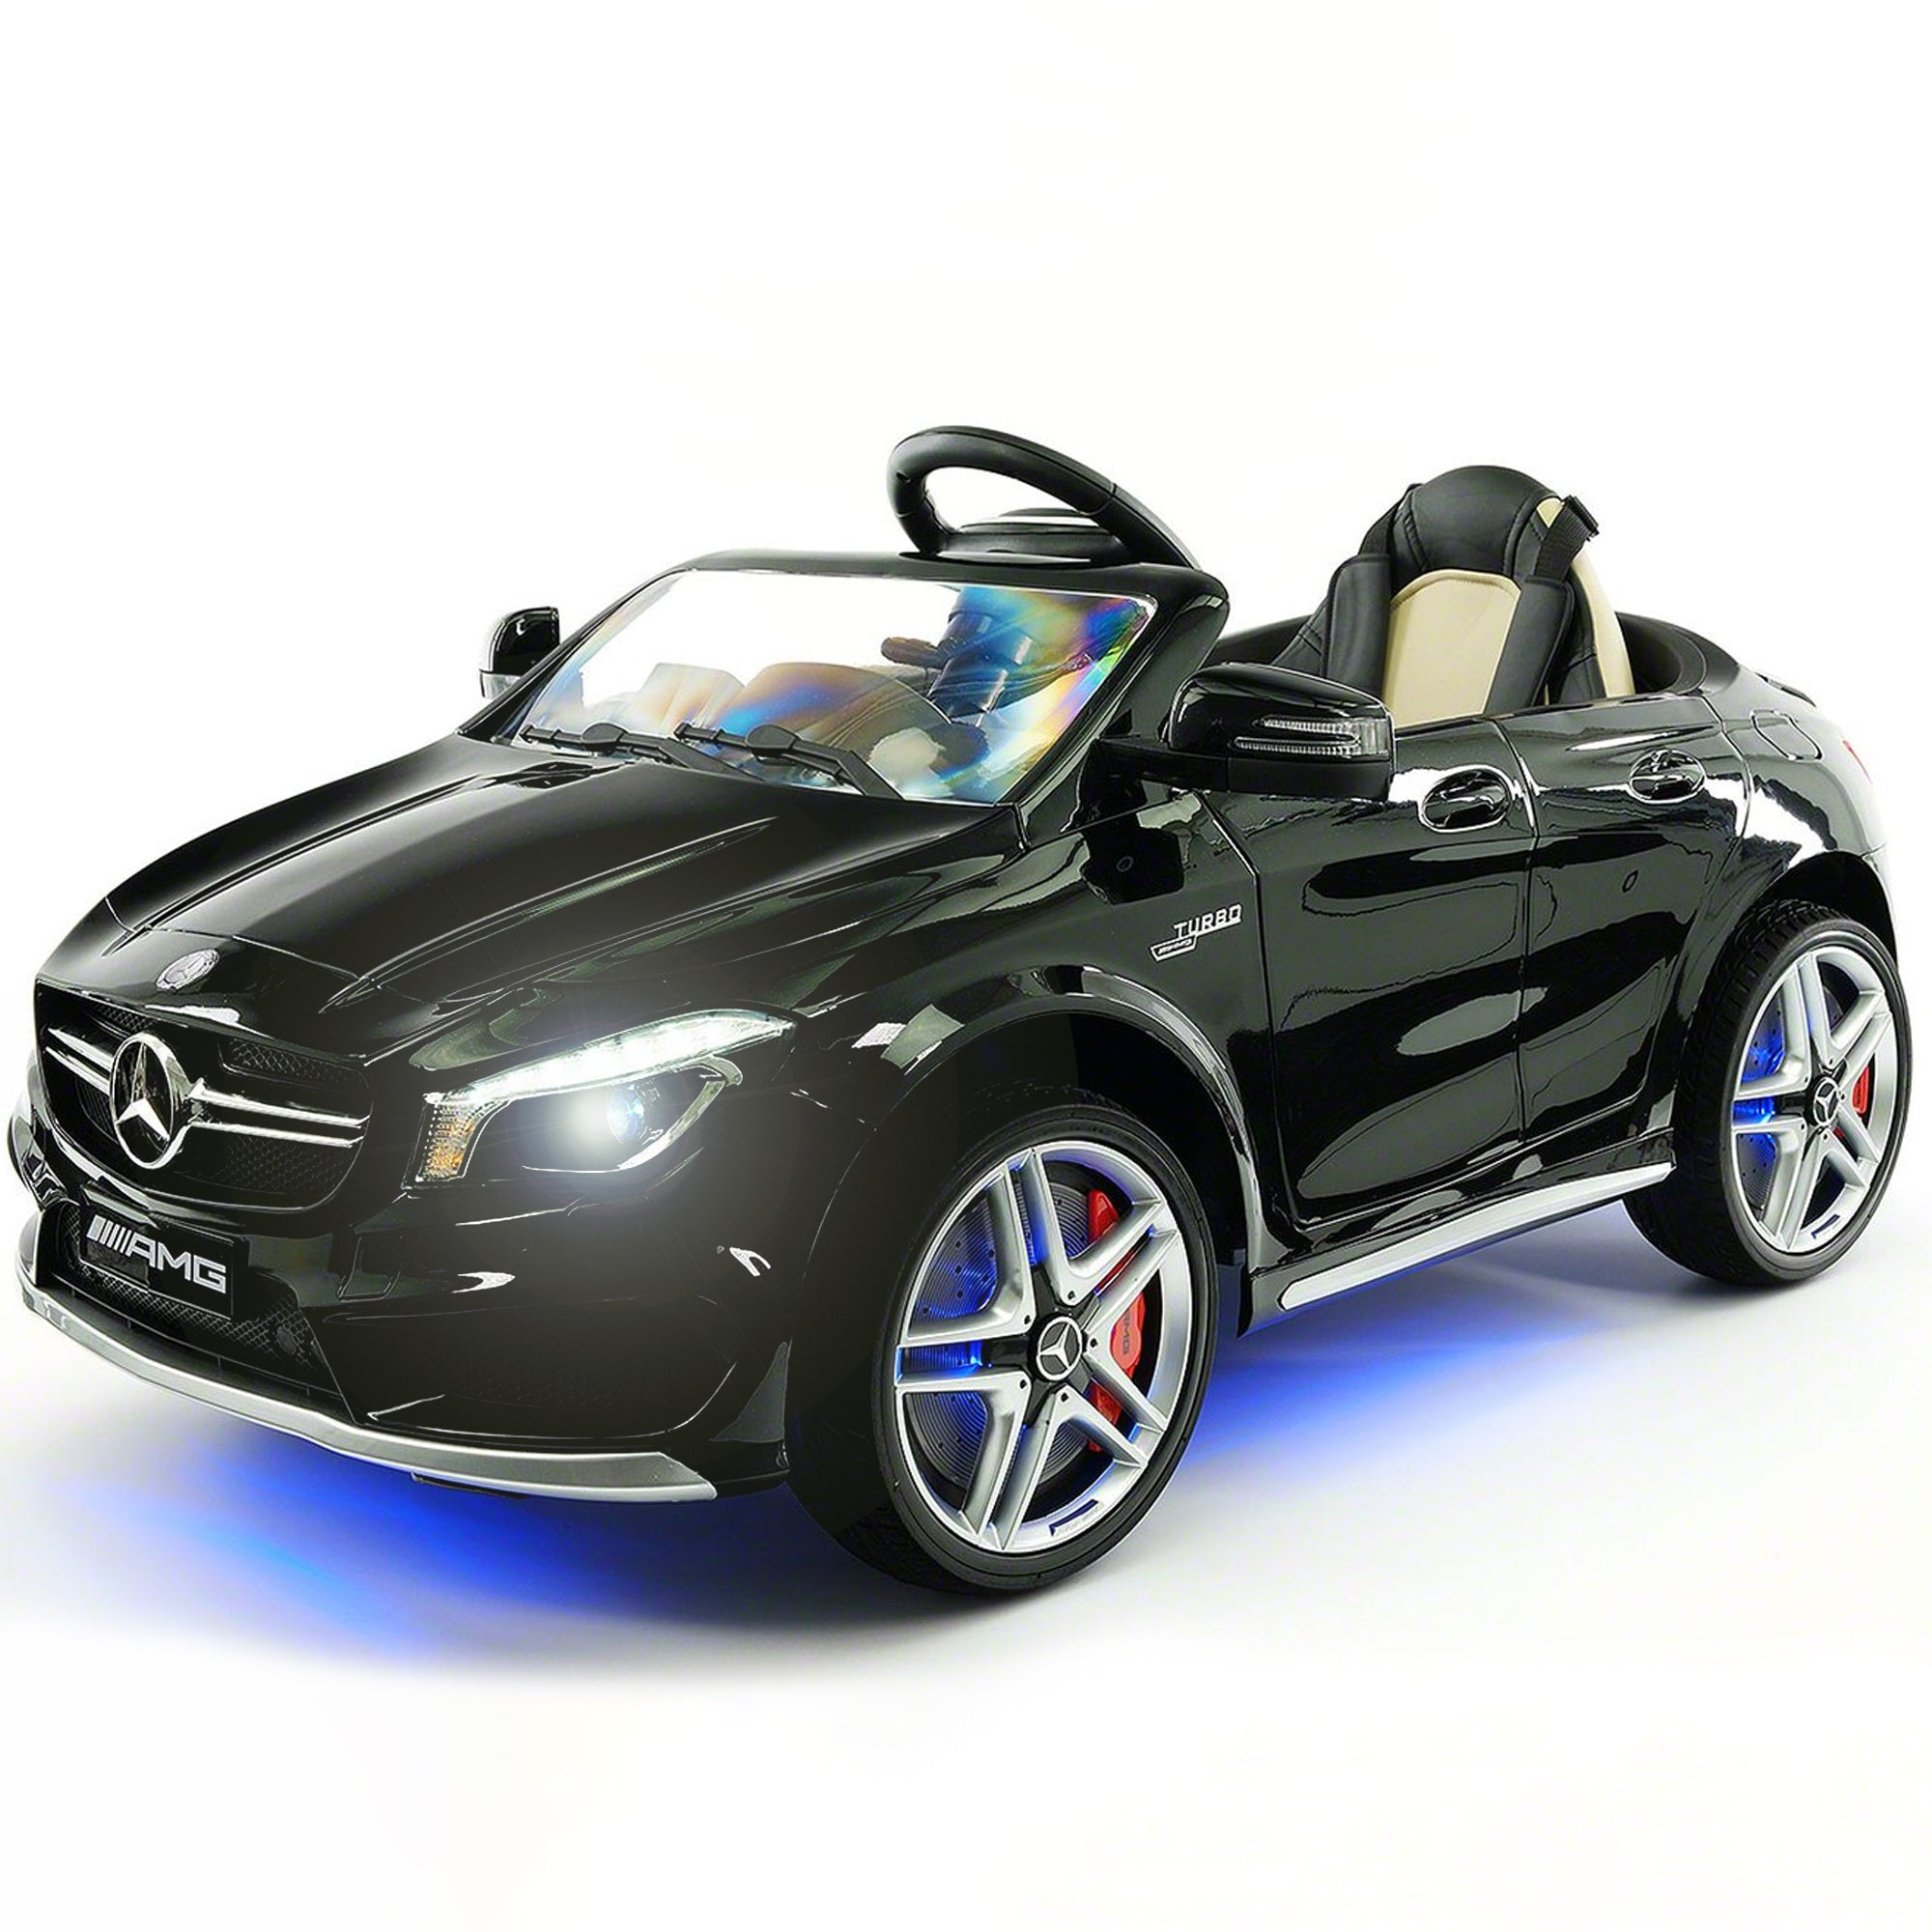 2019 Mercedes Benz CLA 12V Ride On Car for Kids | 12V Engine Power Licensed Kid Car to Drive with Remote, Dining Table, Leather Seat, Openable Doors, LED Lights - Black - Jay Goodys